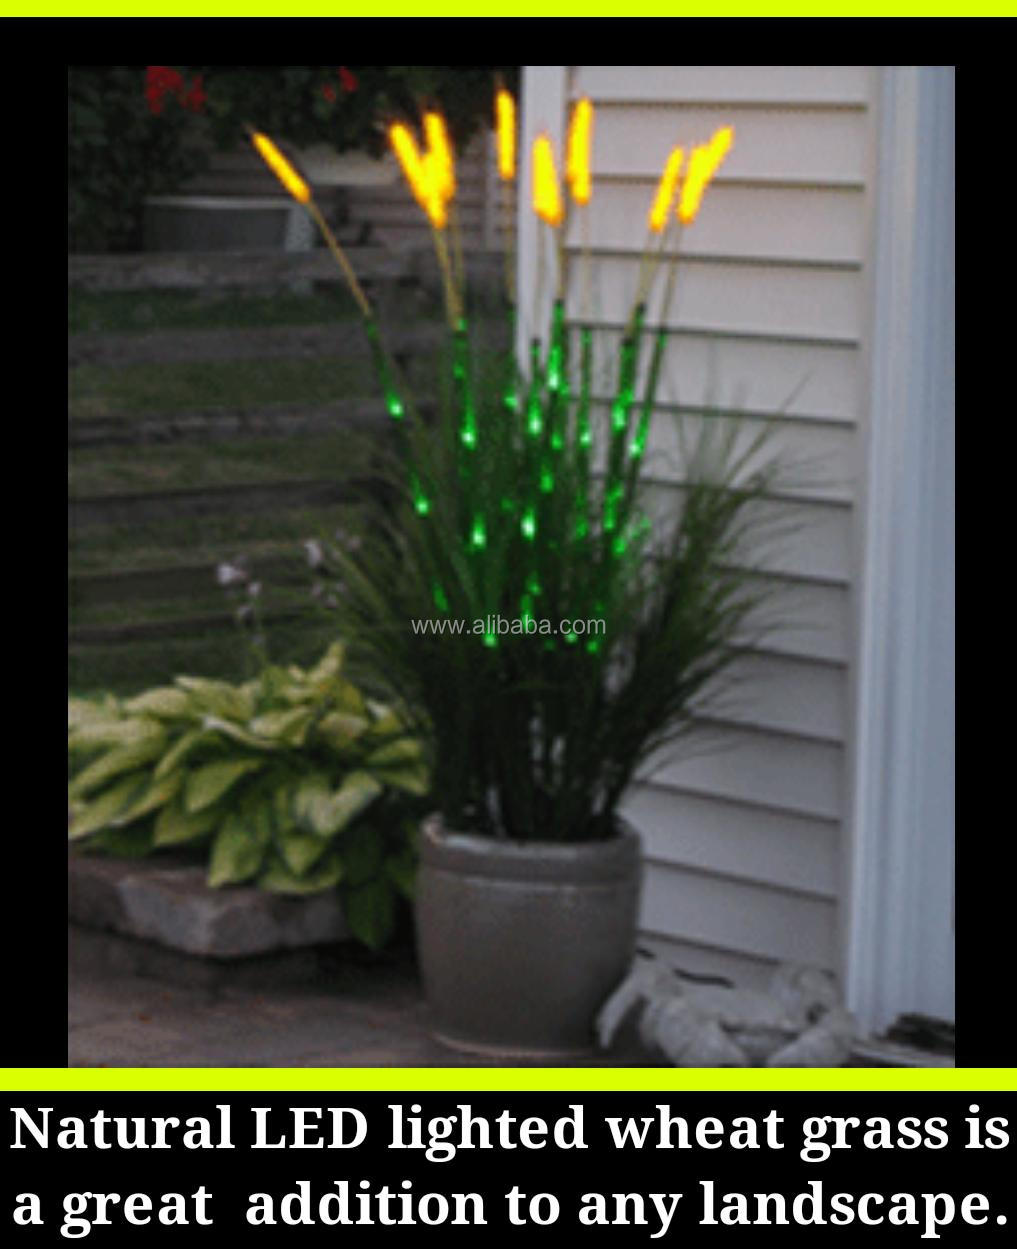 Artificial lighted ornamental led wheat grass garden decoration artificial lighted ornamental led wheat grass garden decoration workwithnaturefo